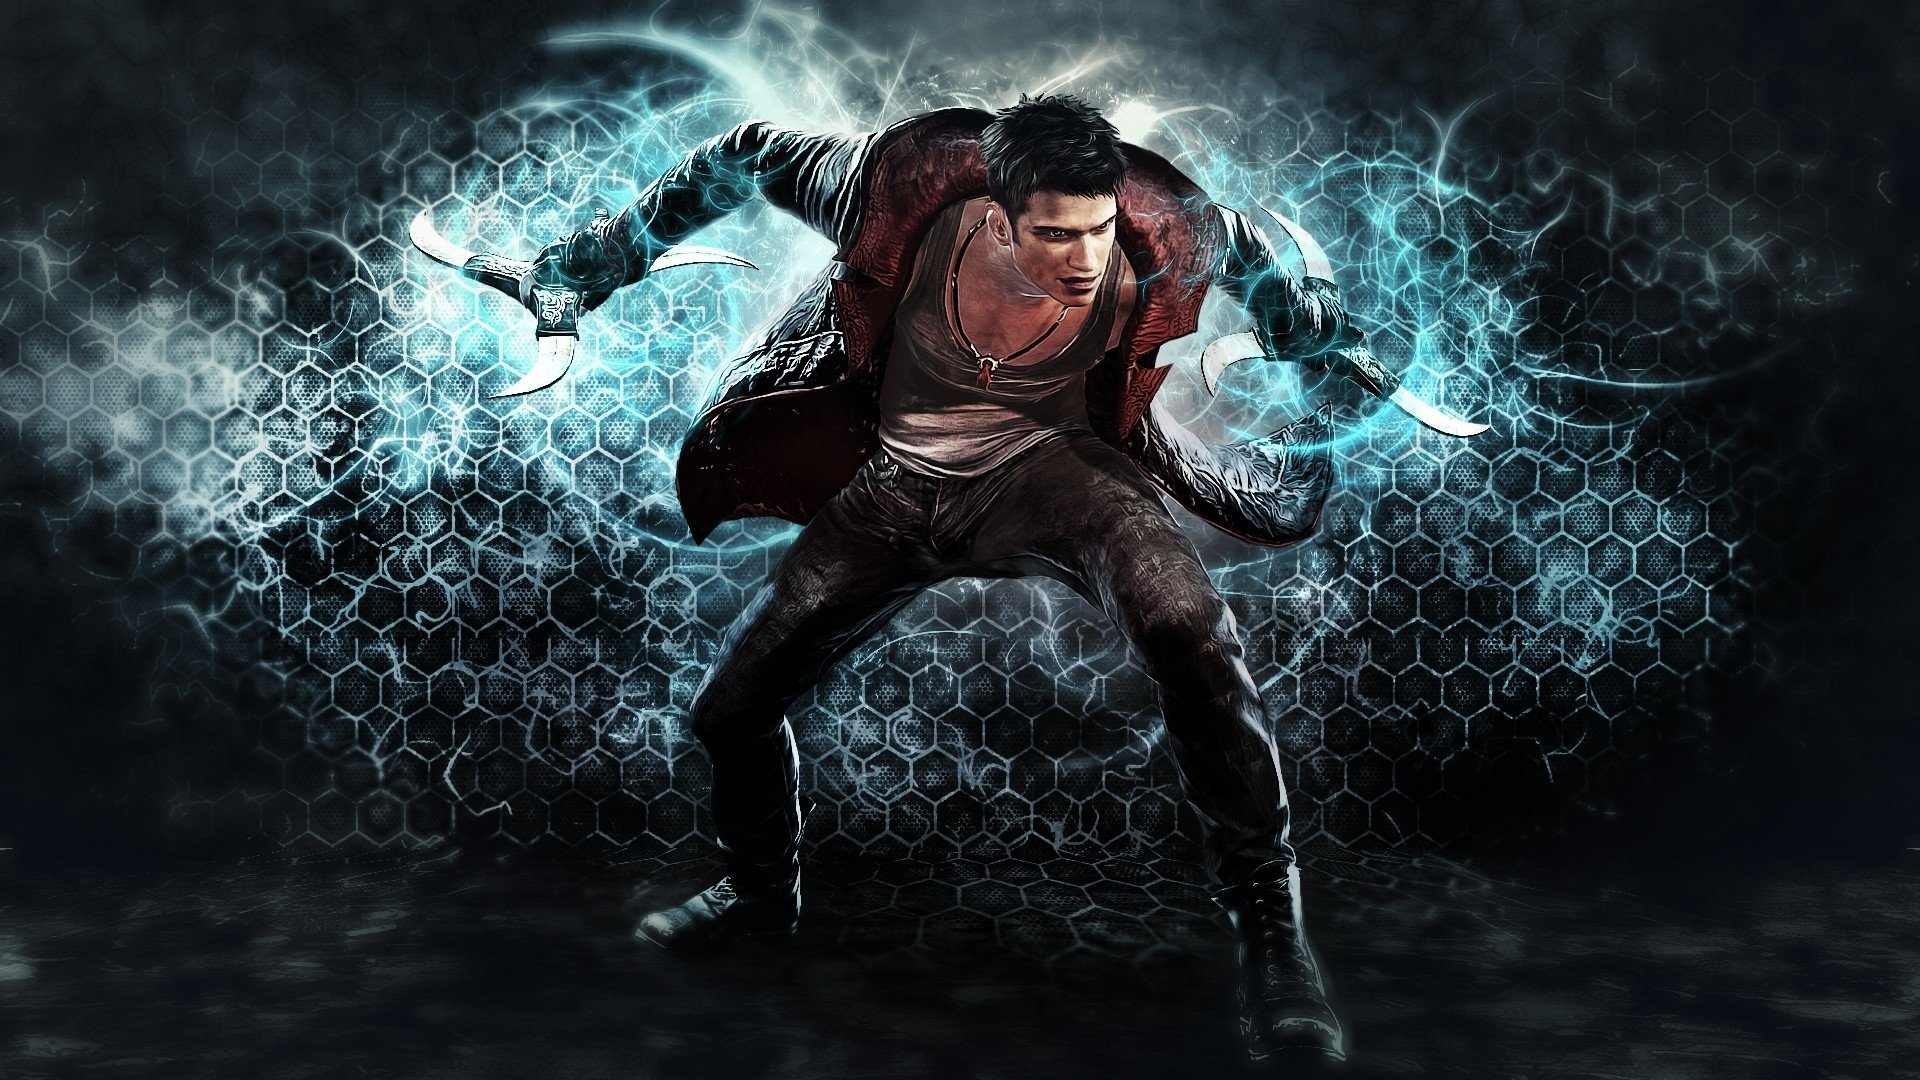 78 Dmc Devil May Cry Hd Wallpapers Background Images